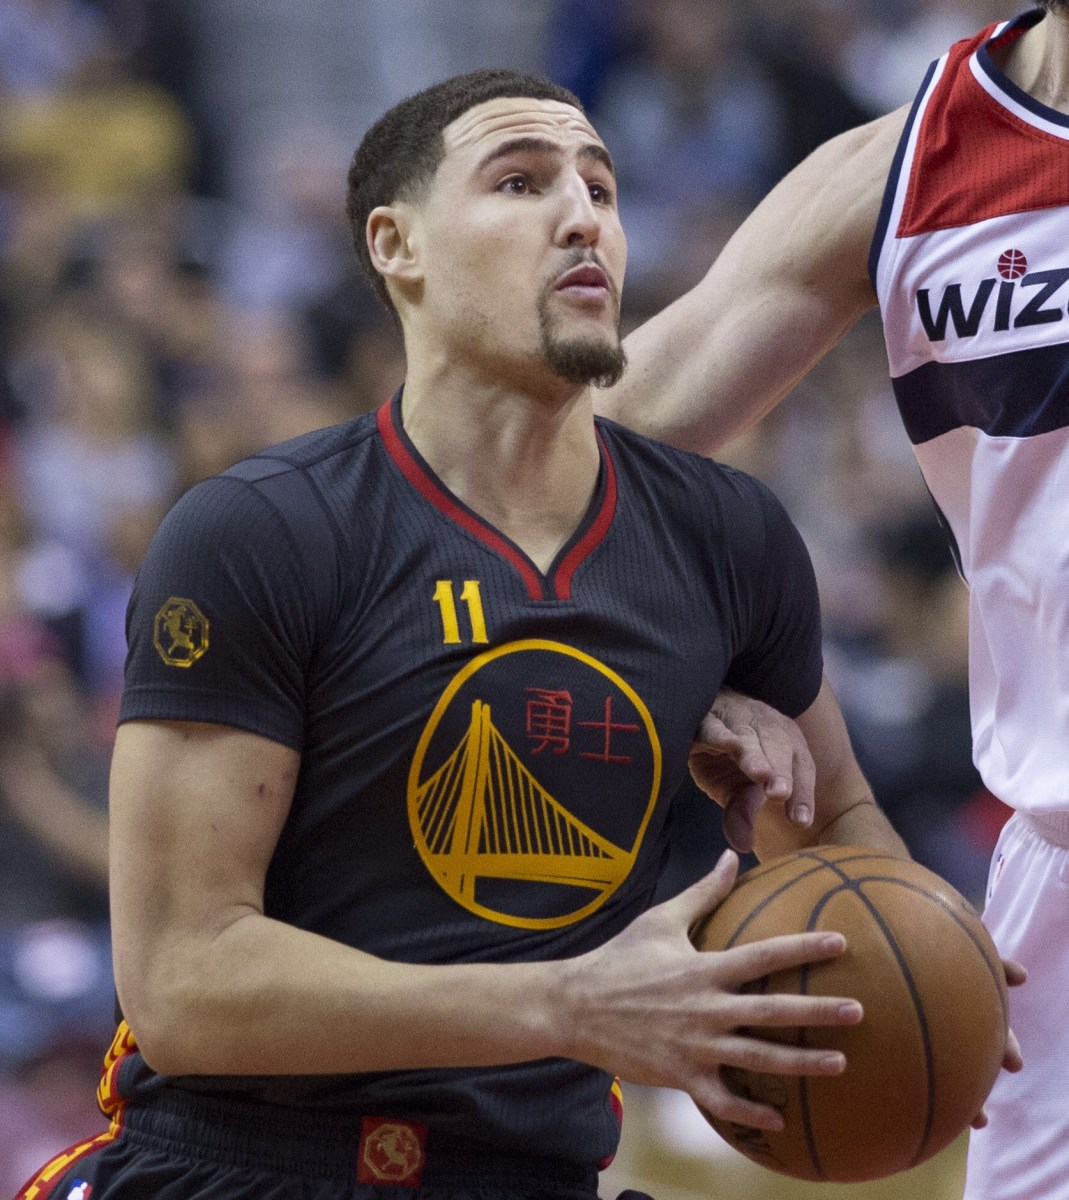 Klay Thompson in action Courtesy: http://search.creativecommons.org/ https://de.wikipedia.org/wiki/Klay_Thompson